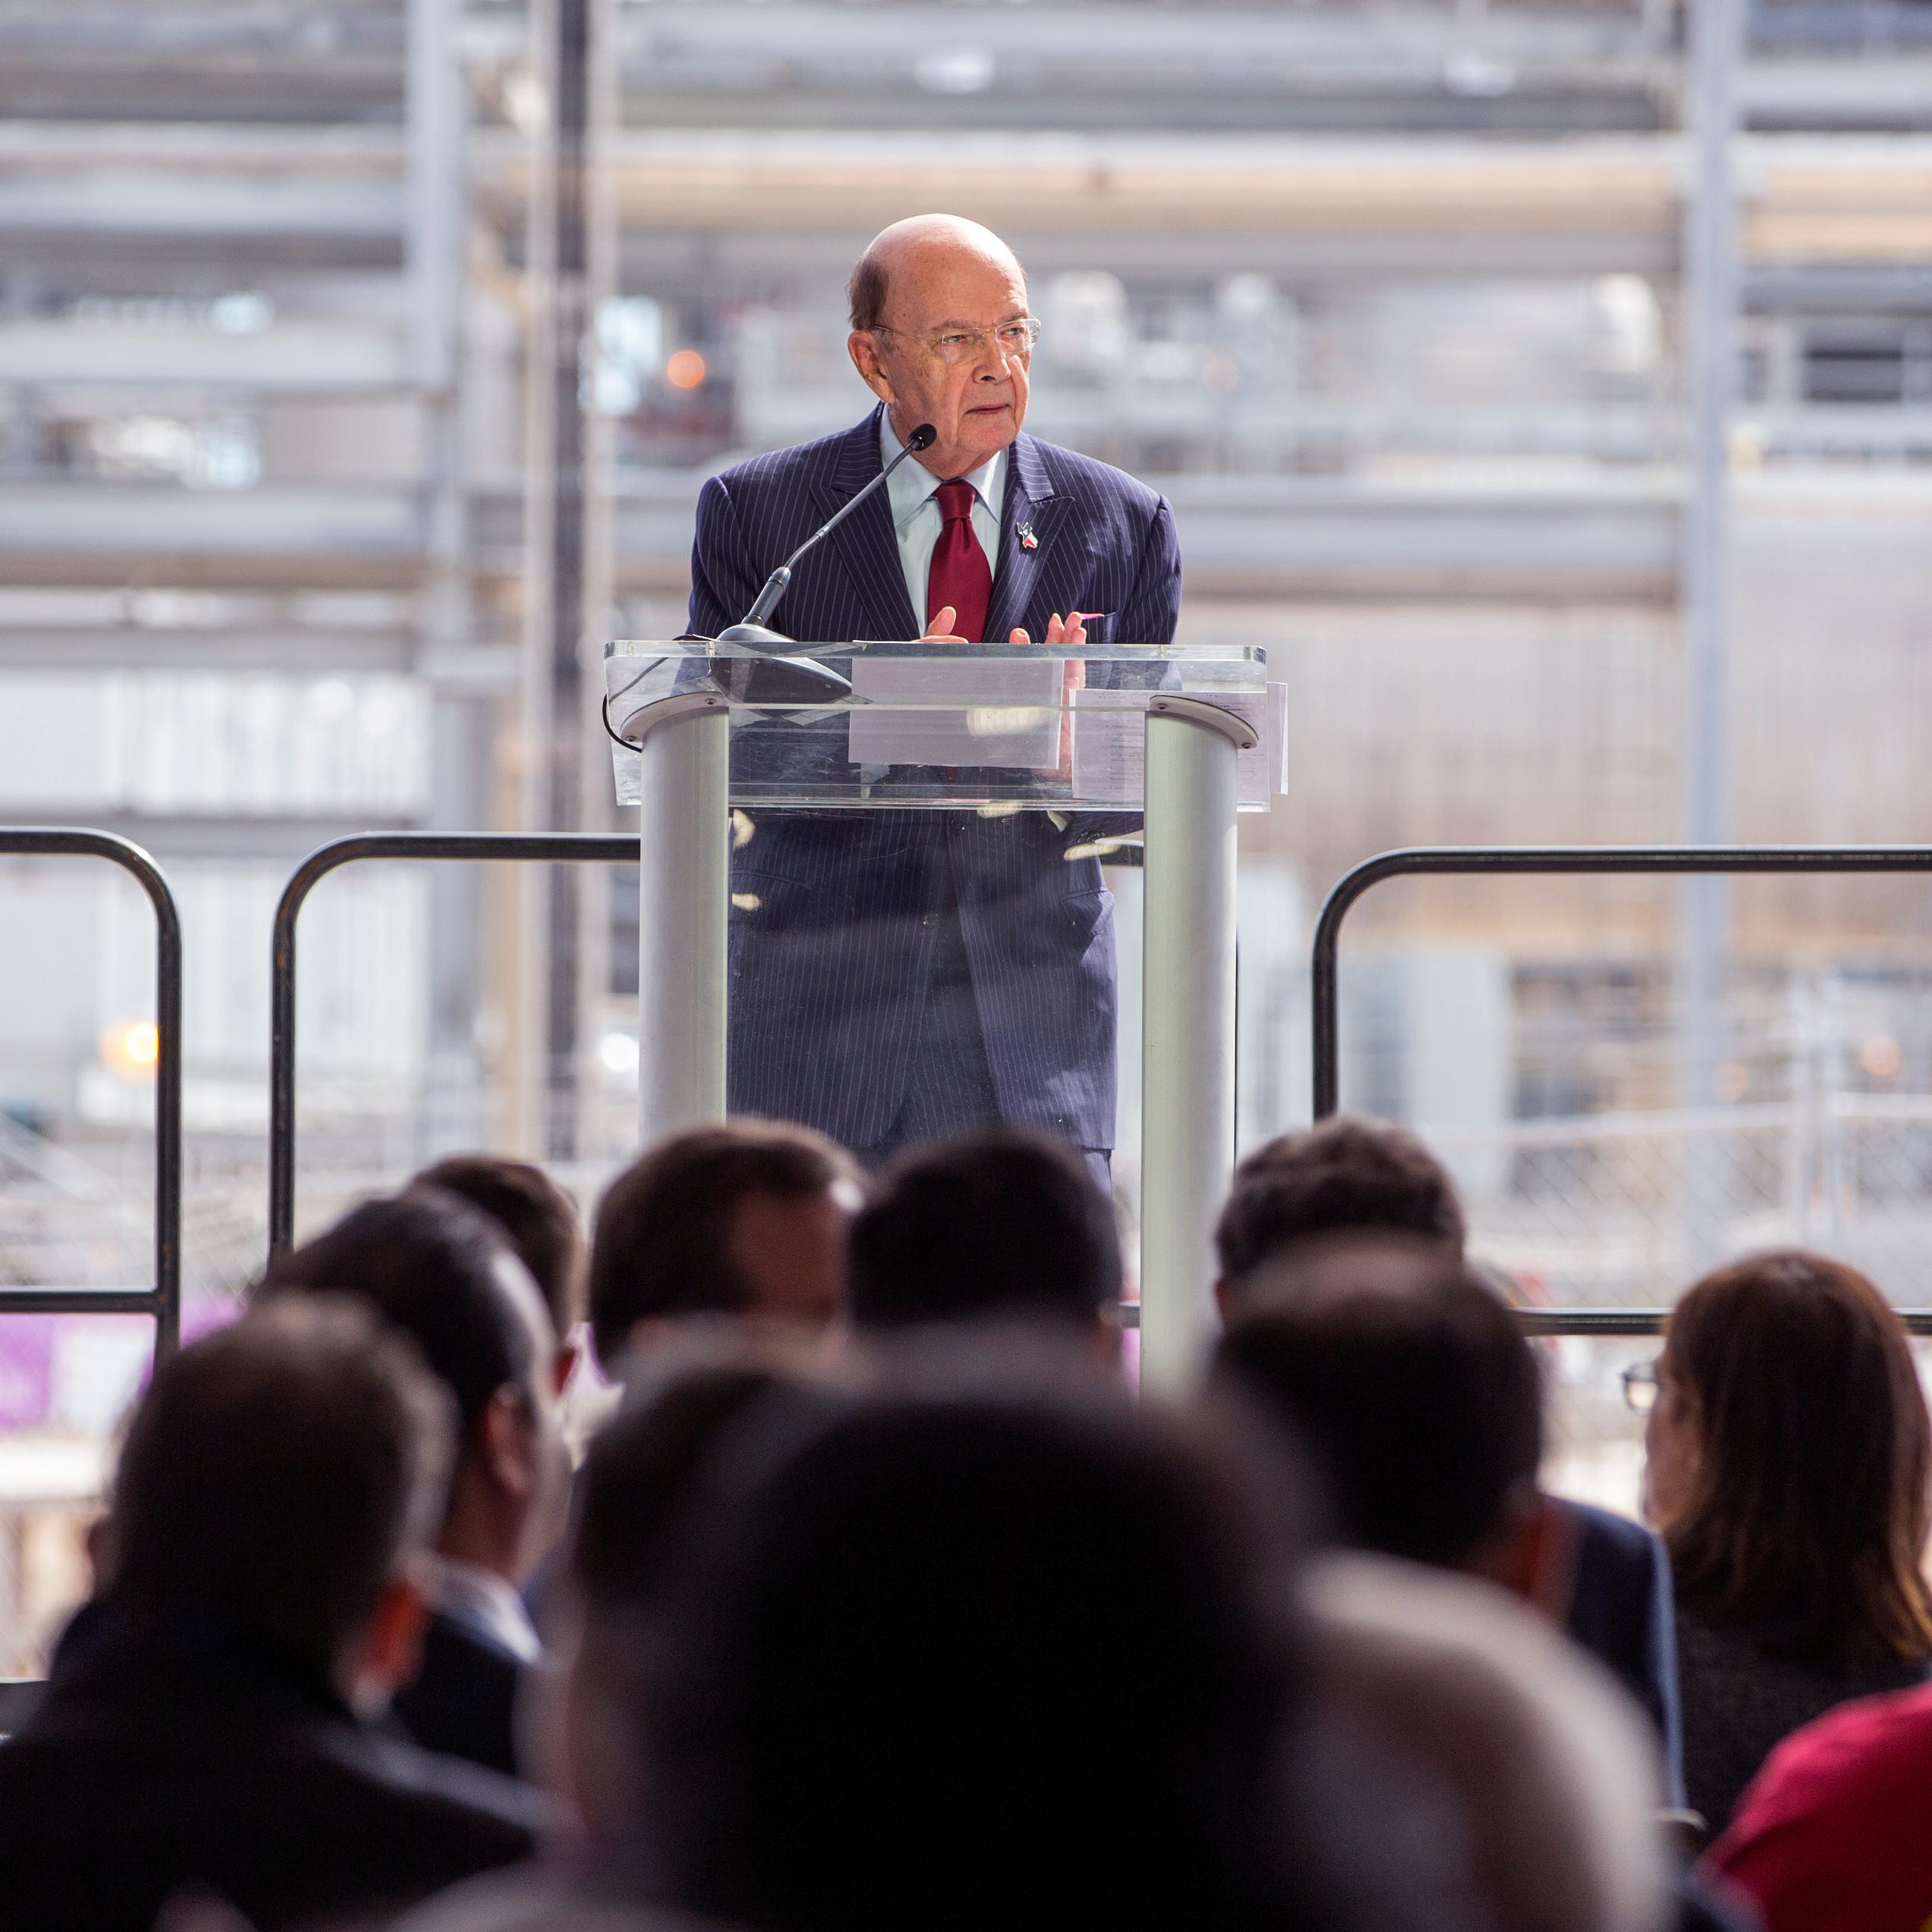 United States Secretary of Energy Wilbur Ross speaks during the  opening celebration for the Corpus Christi Liquefaction facility with national, state and local leaders, and commercial partners in recognition of the startup of the first greenfield liquefaction plant built in the lower 48 states on Thursday, November, 15, 2018 in Gregory, TX.